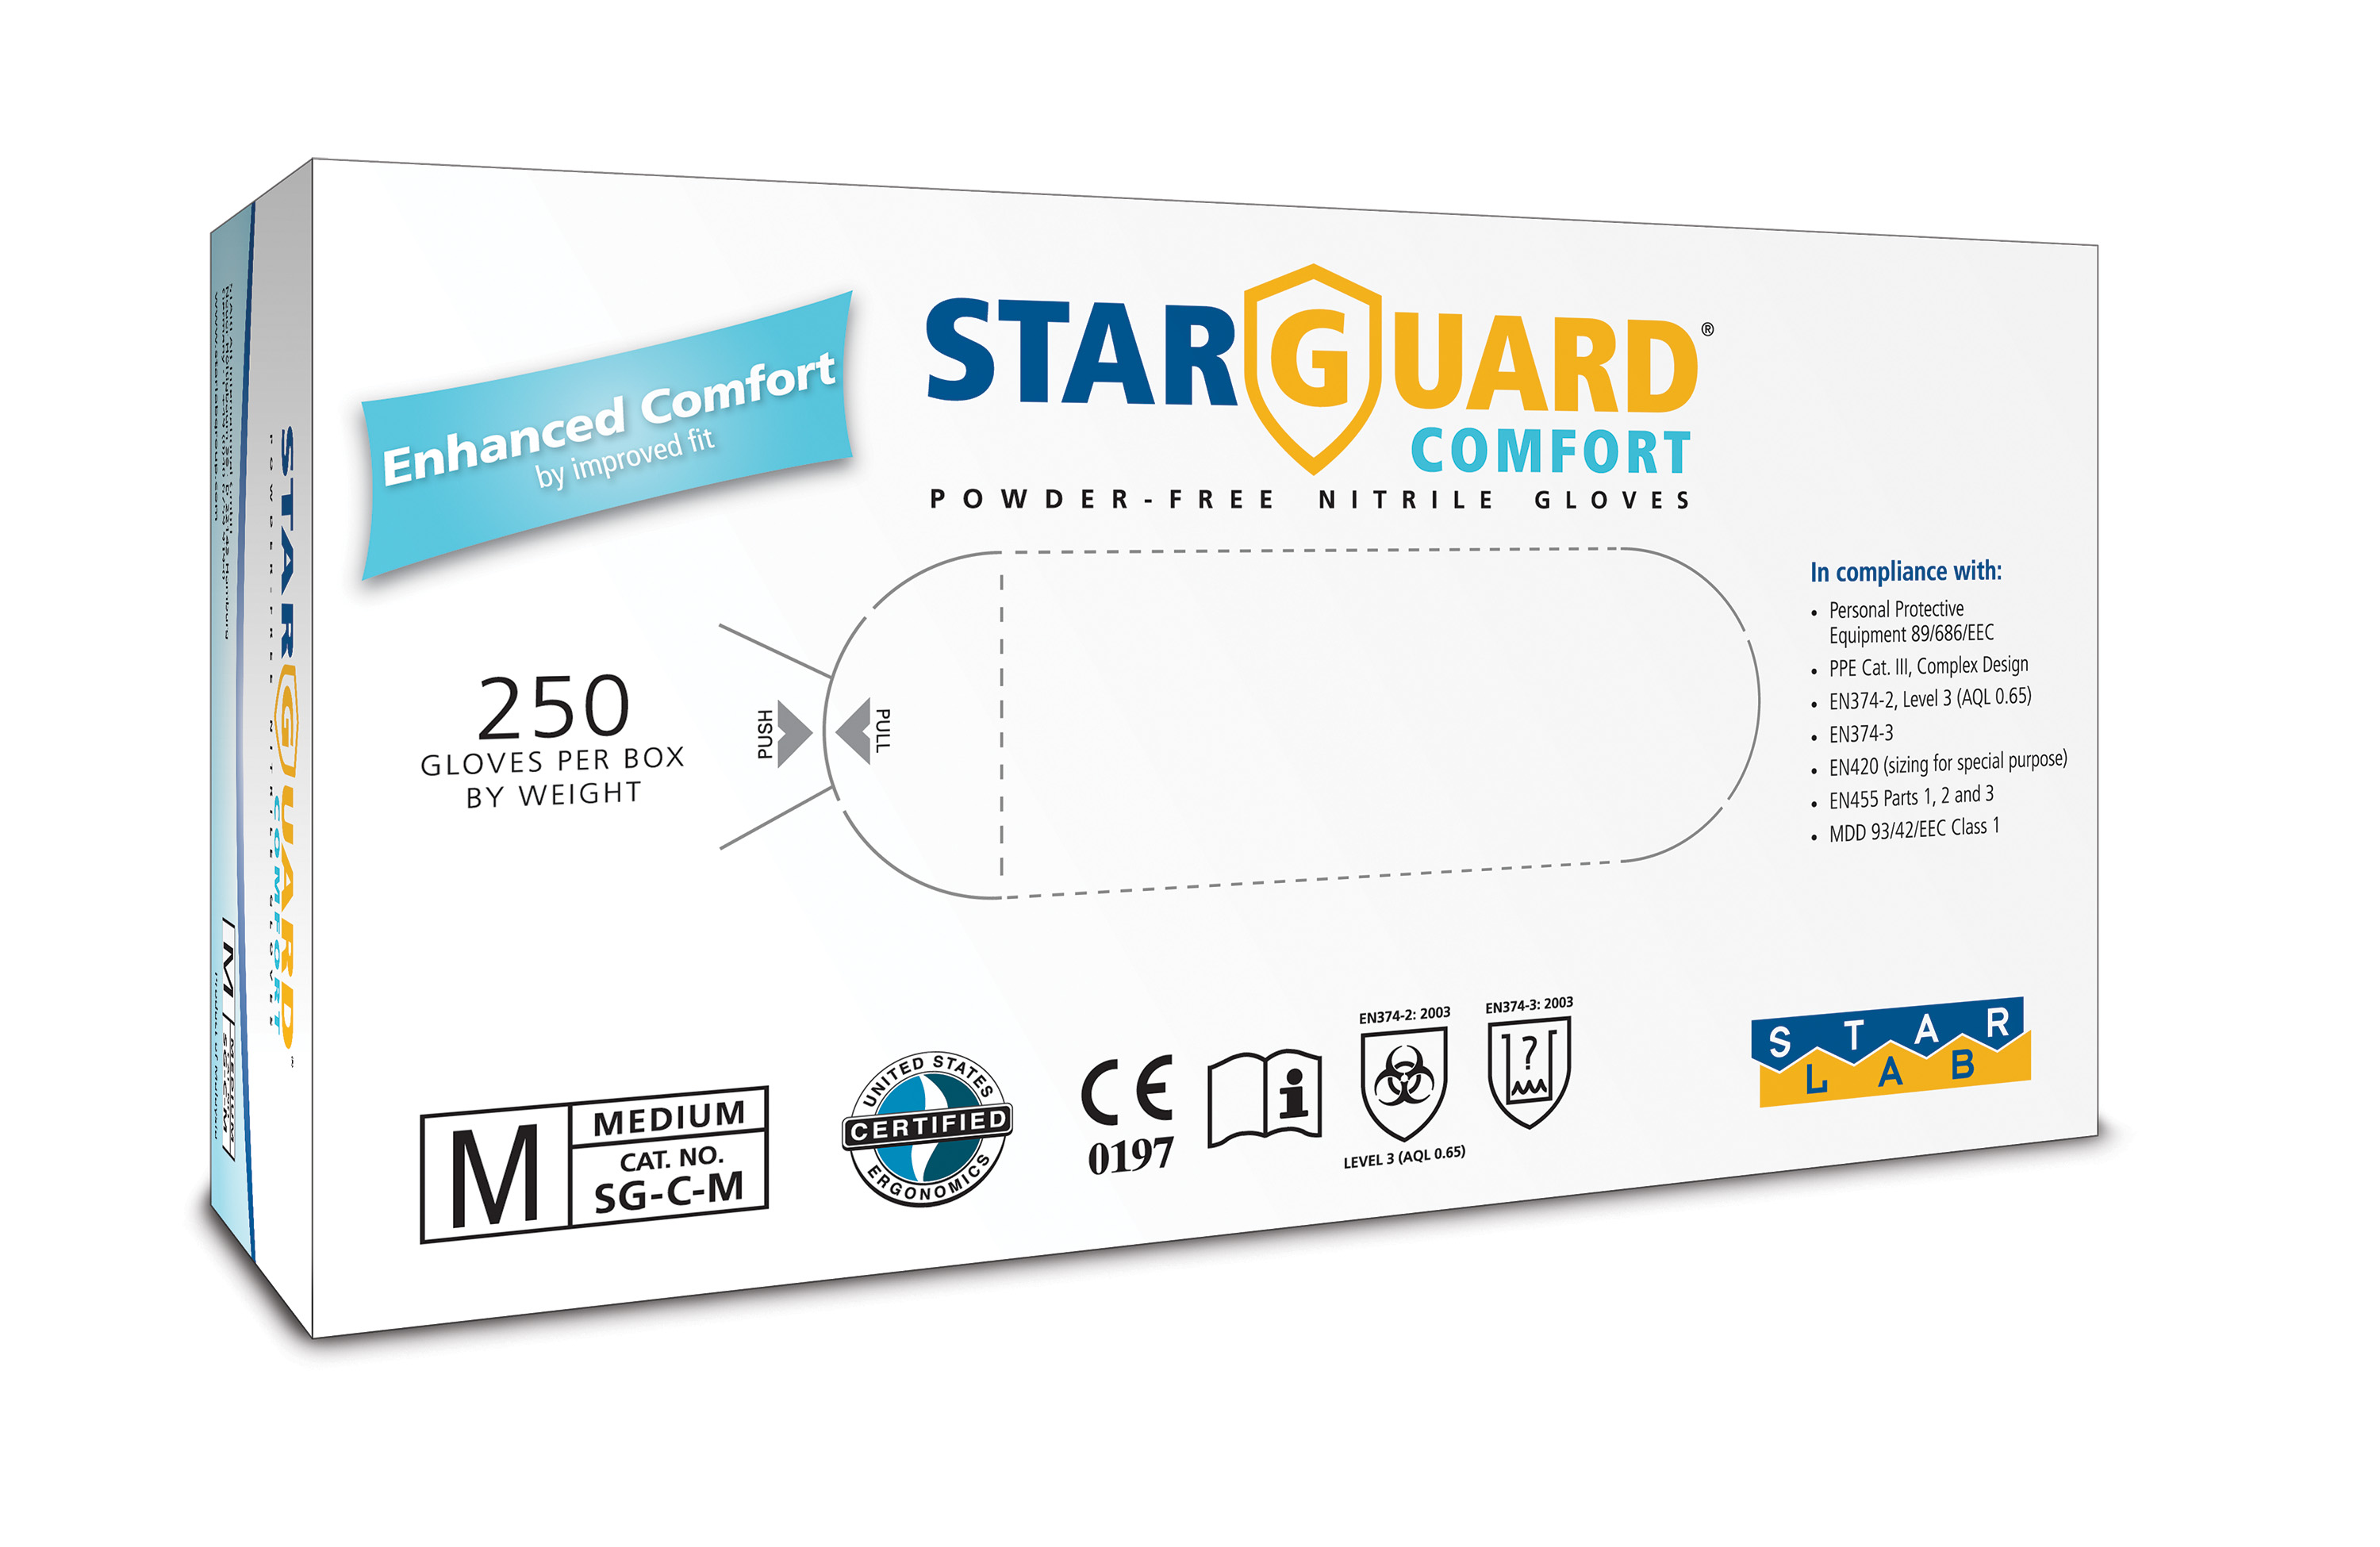 StarGuard COMFORT  (feels like Latex) Nitrile Gloves, Powder Free, Blue, Size XL, Pk/ 10 x 250 gloves  - just sFr. 5,25/100 gloves